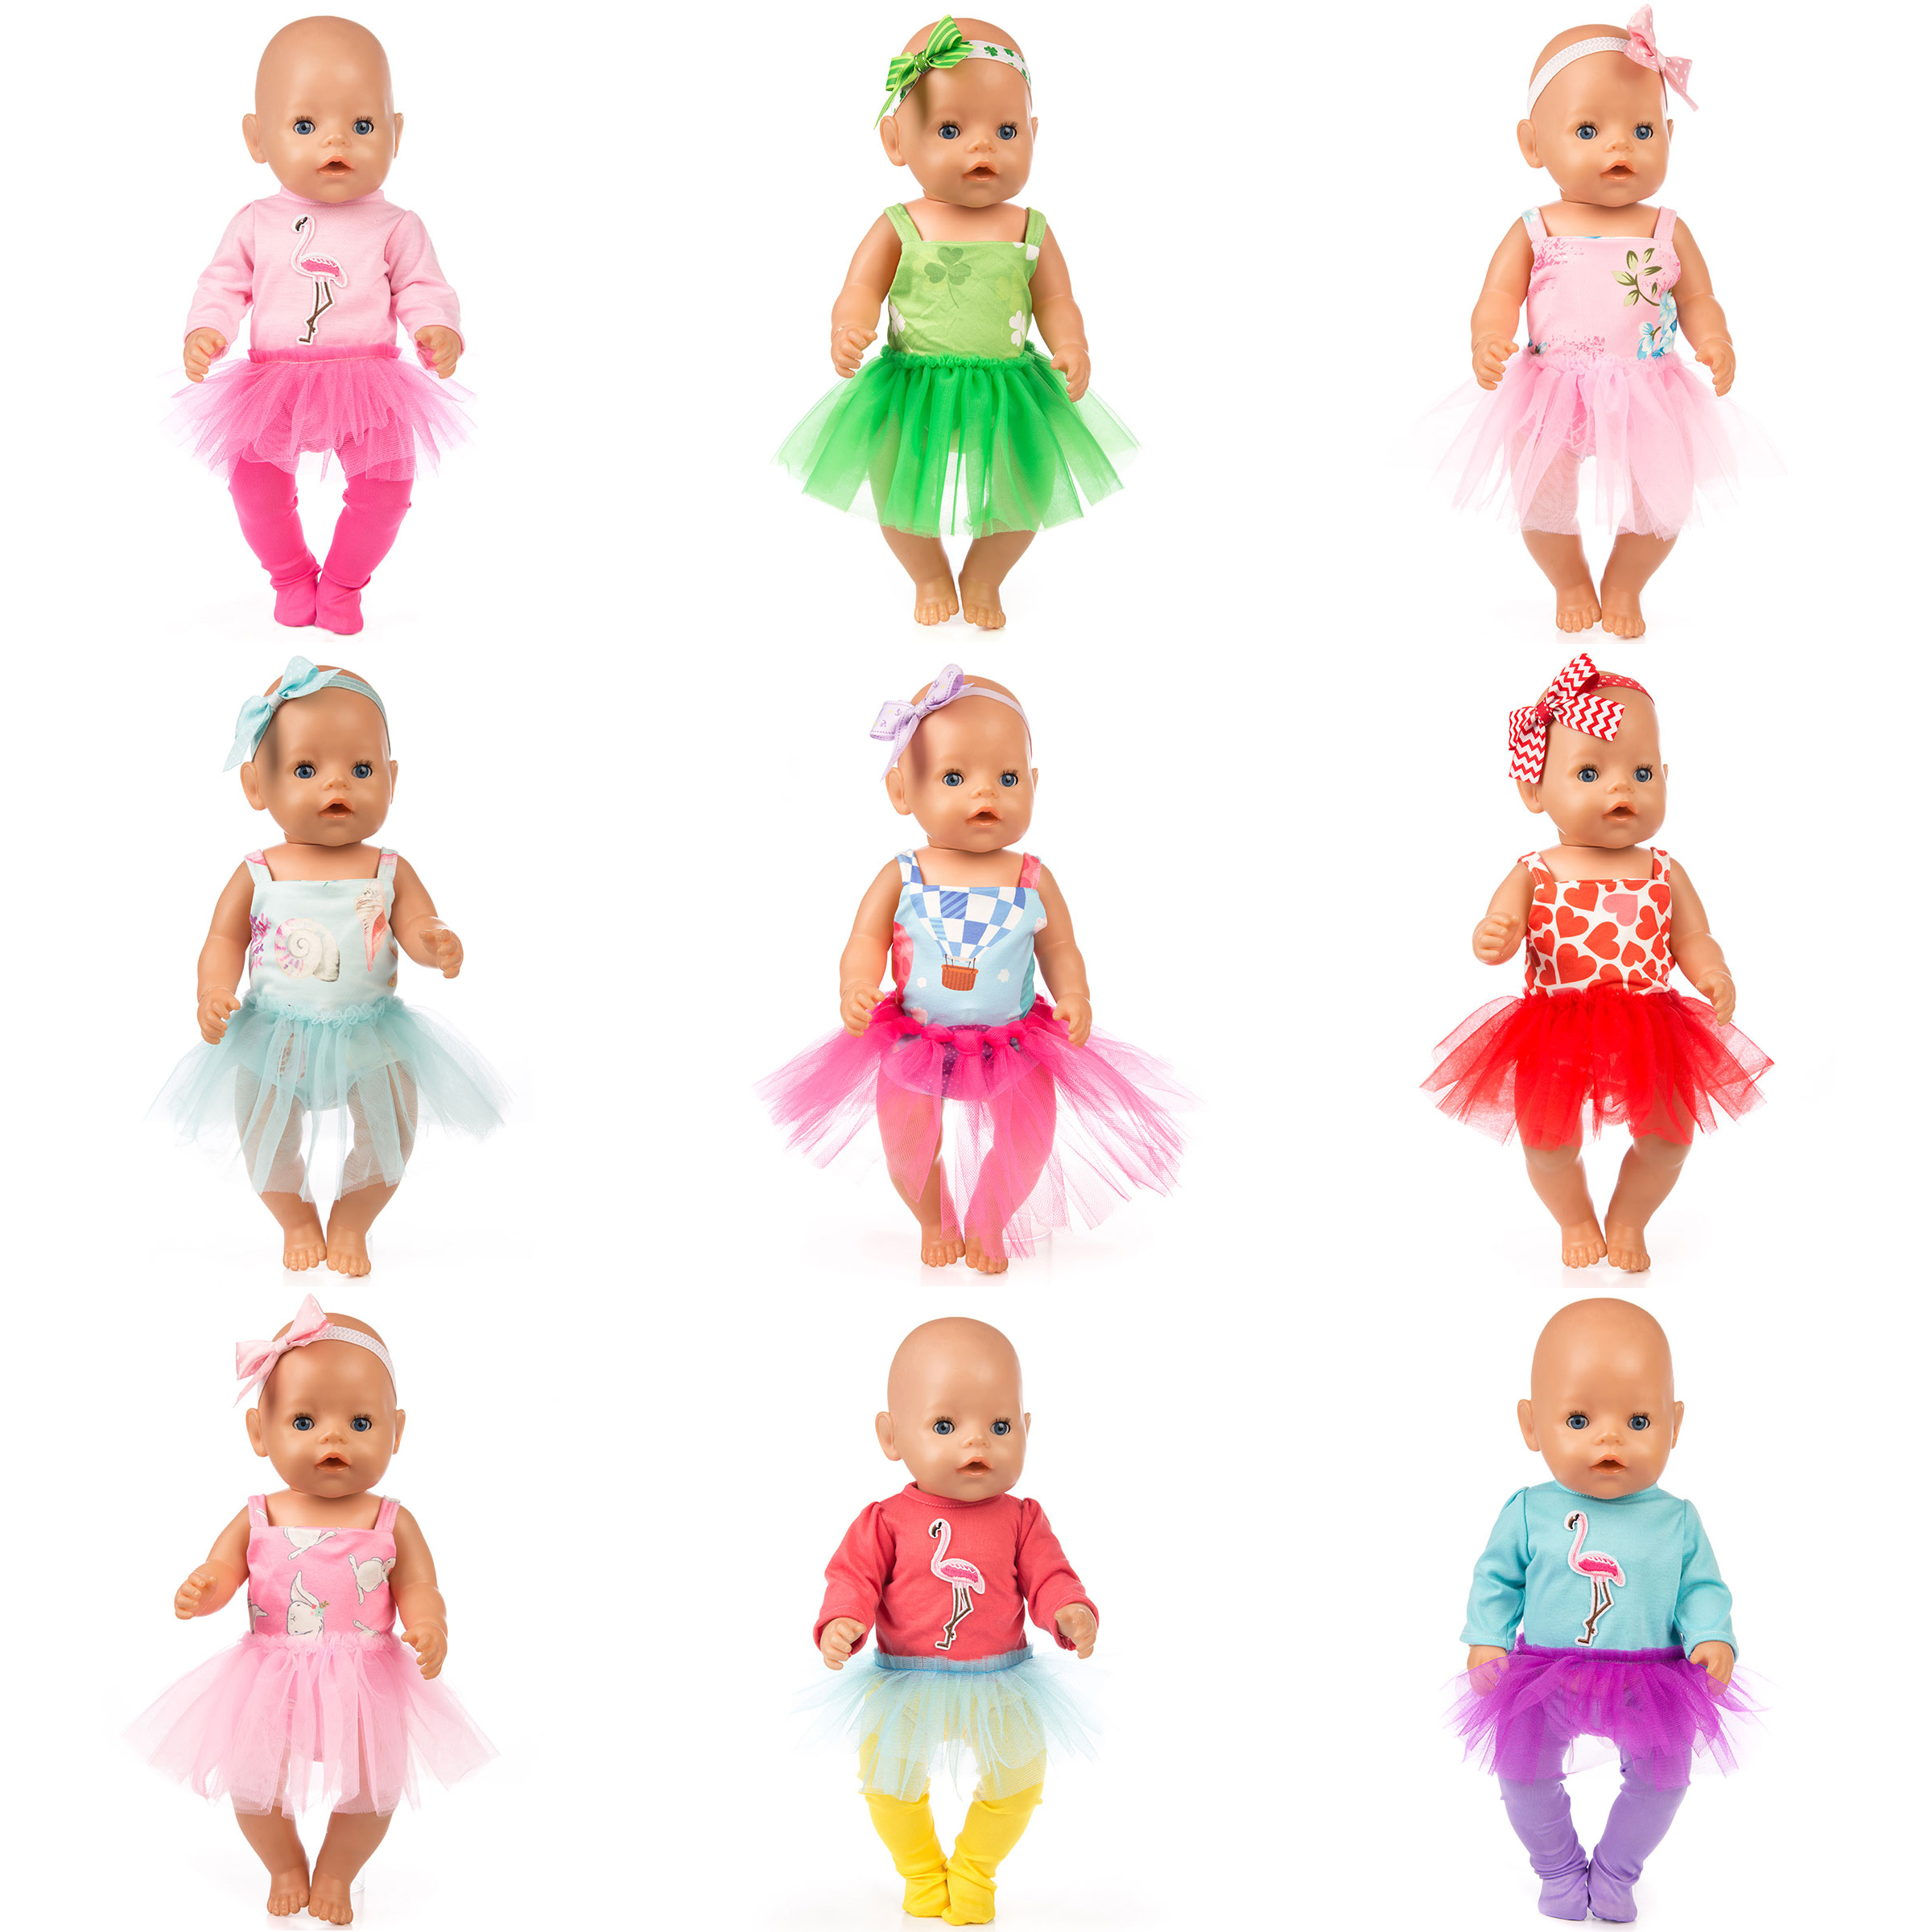 New Doll Clothes Wear Fit For 43cm Zapf Baby Doll, 17Inch Born Dolls Accessories.